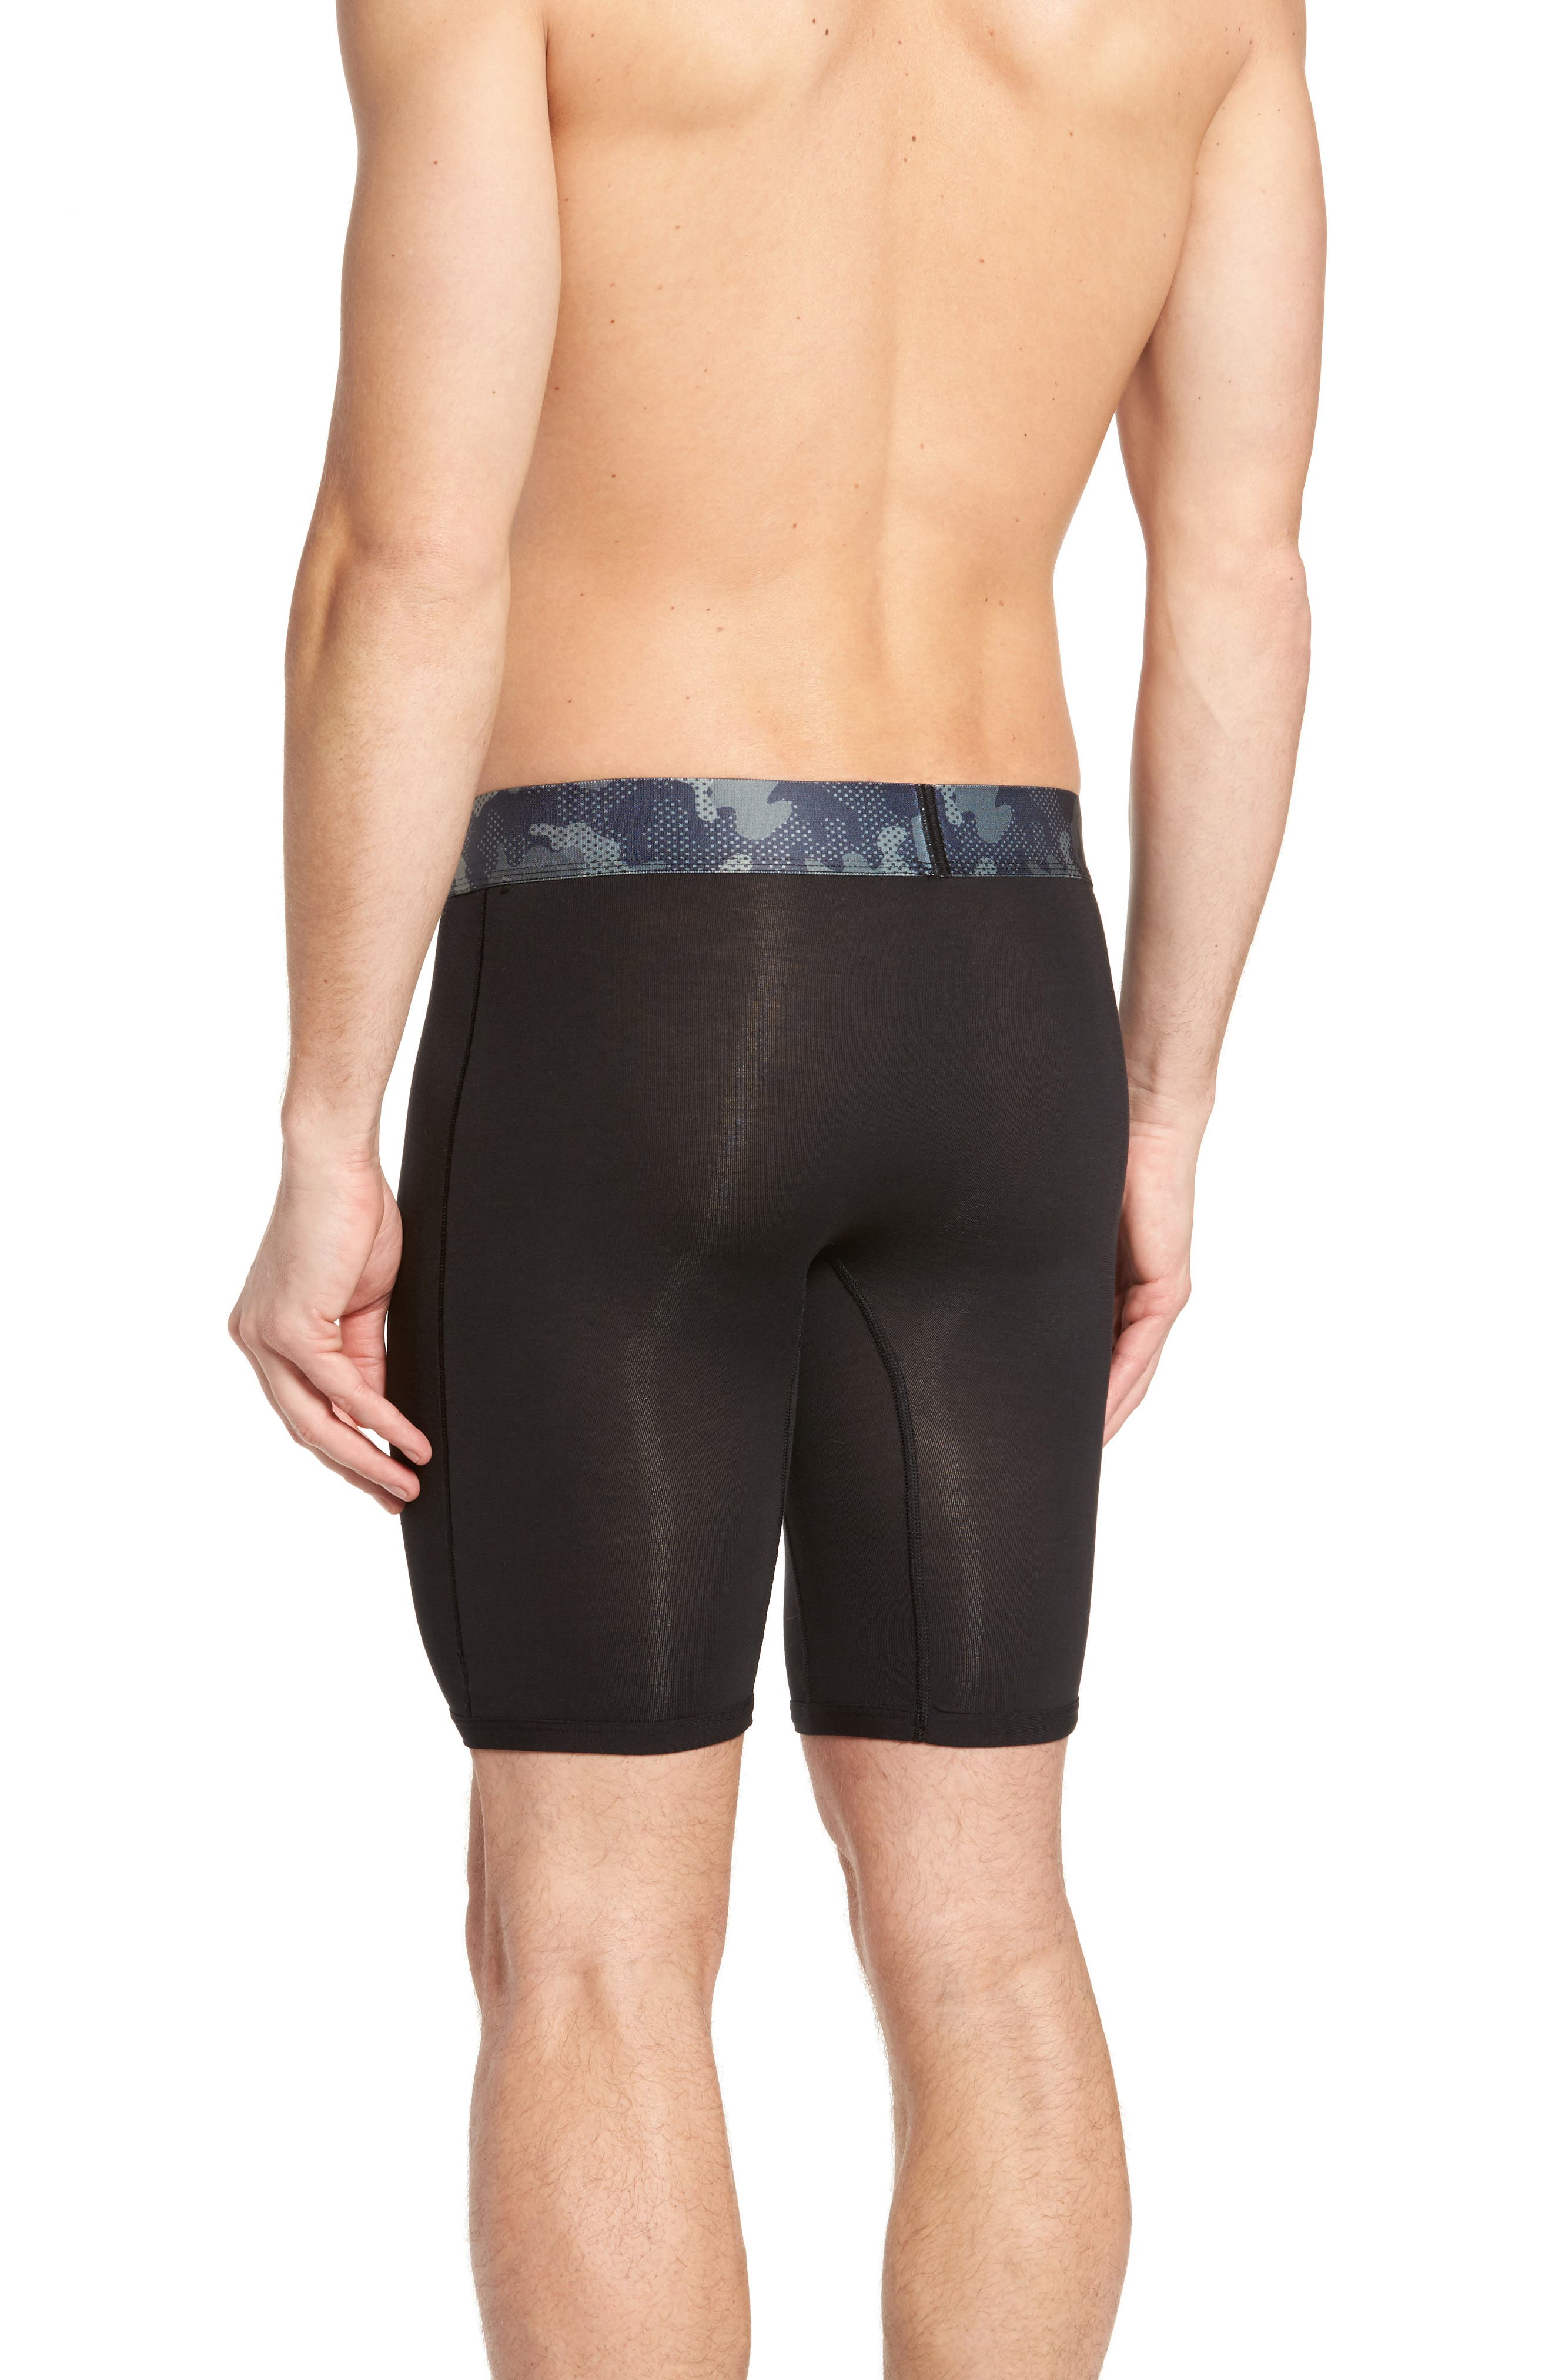 Second Skin Kevin Hart Boxer Briefs,                             Alternate thumbnail 2, color,                             Black